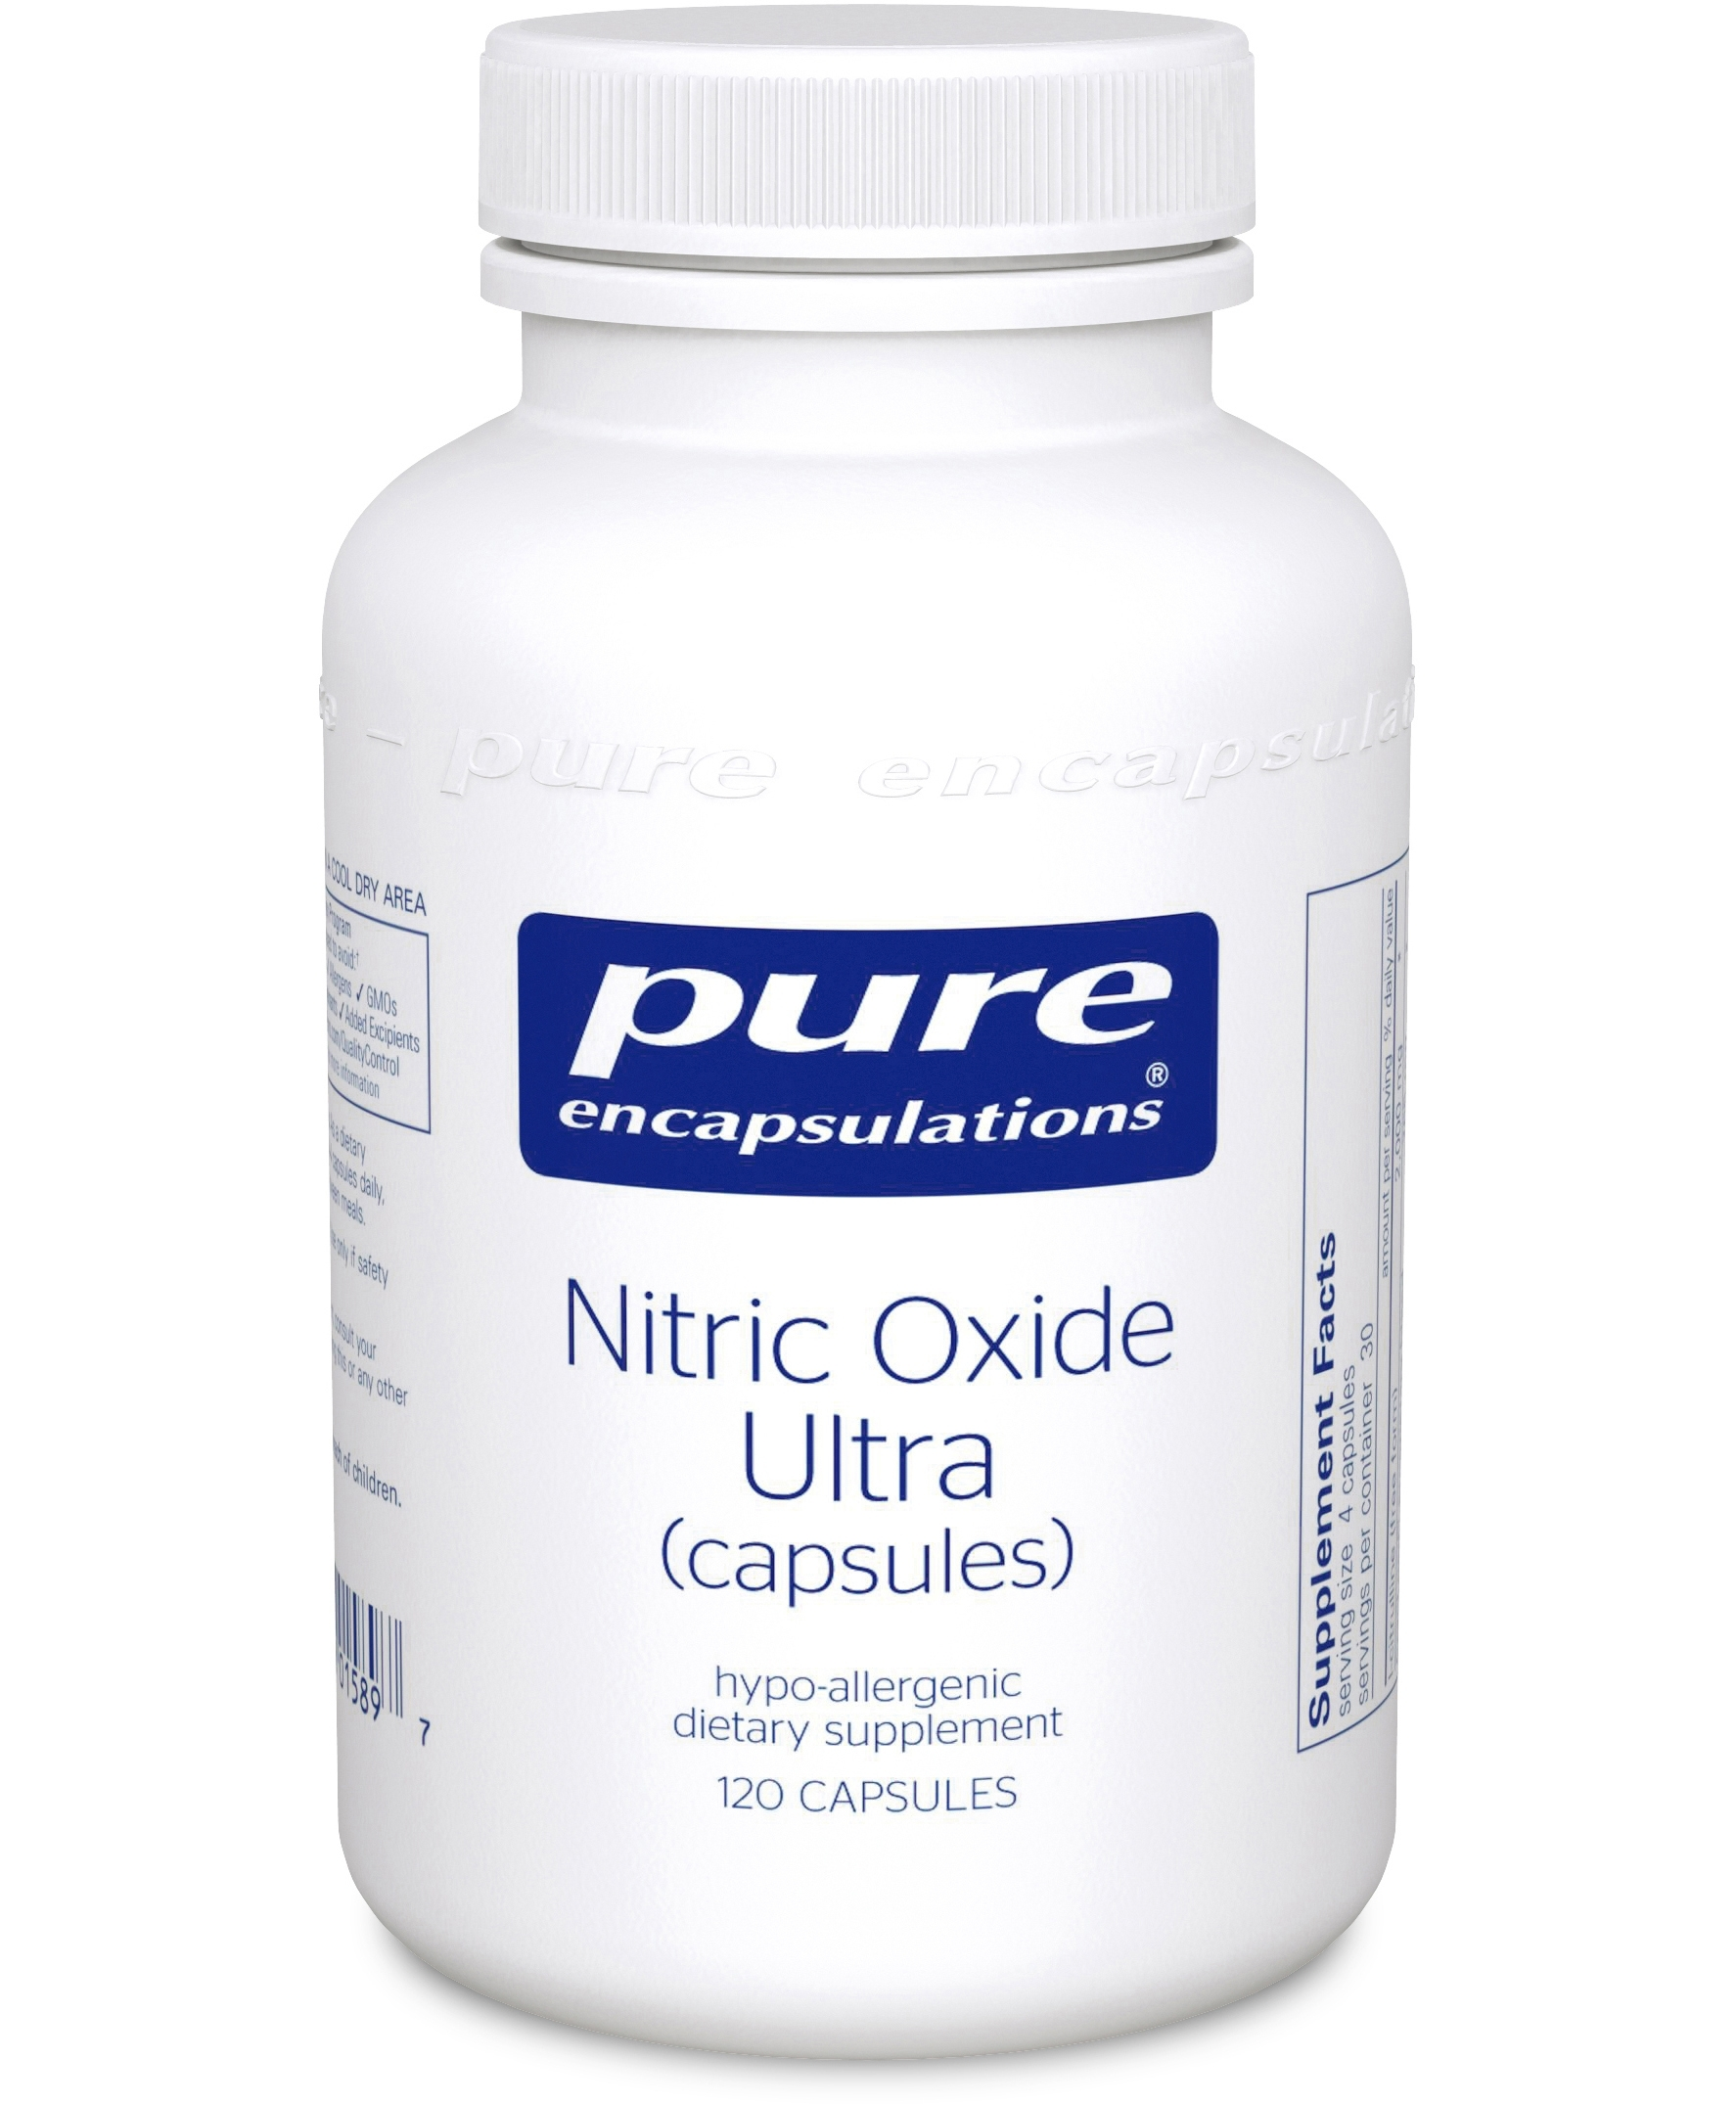 Nitric Oxide Ultra 120 capsules